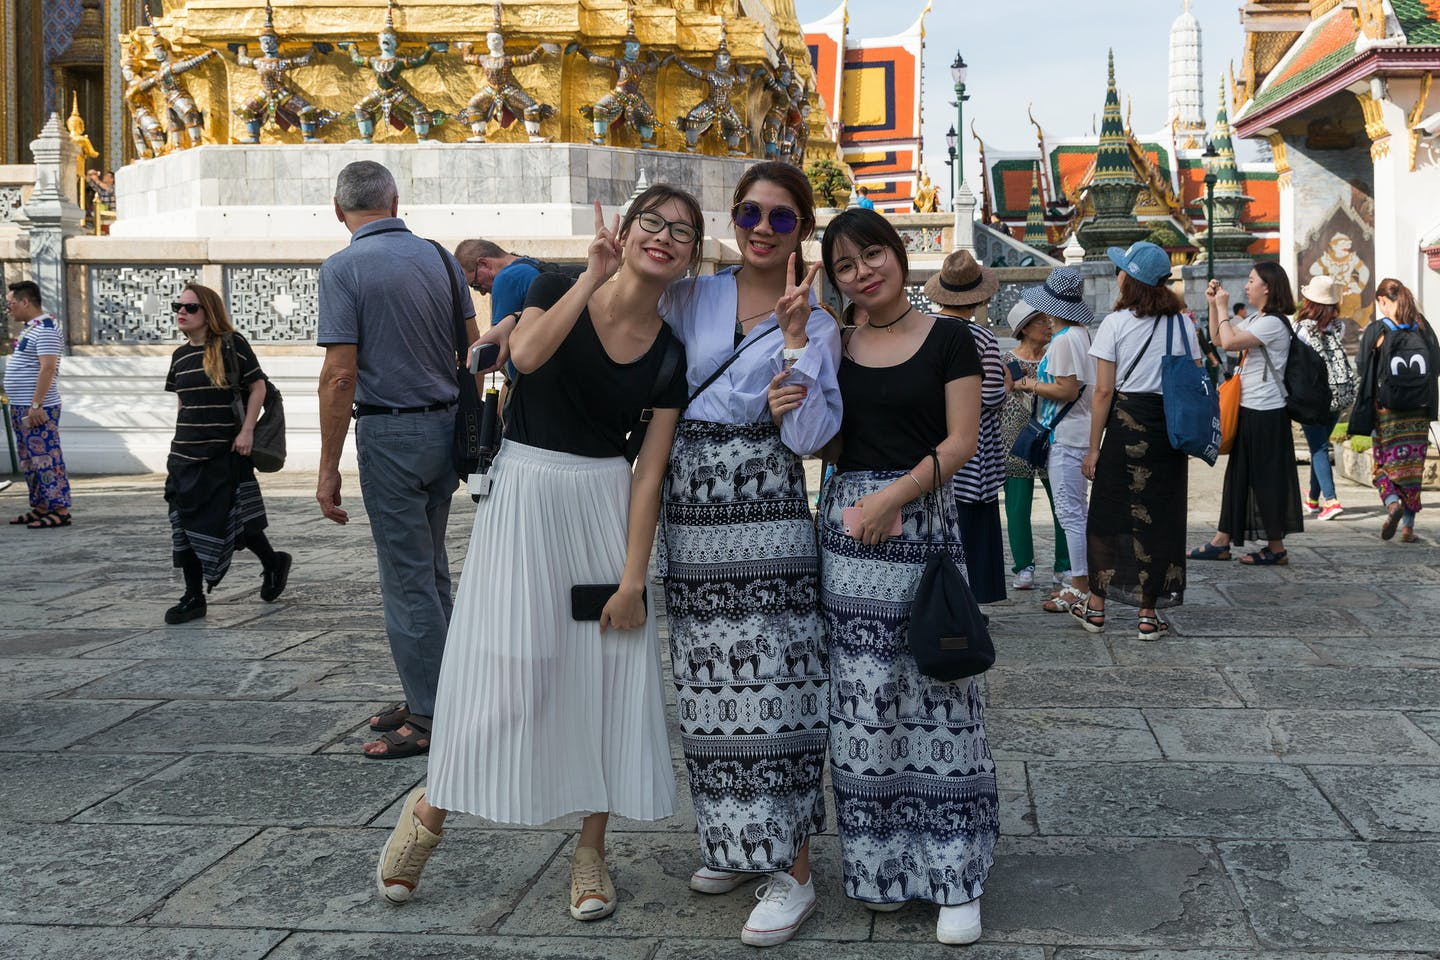 Tourists in Bangkok, Thailand